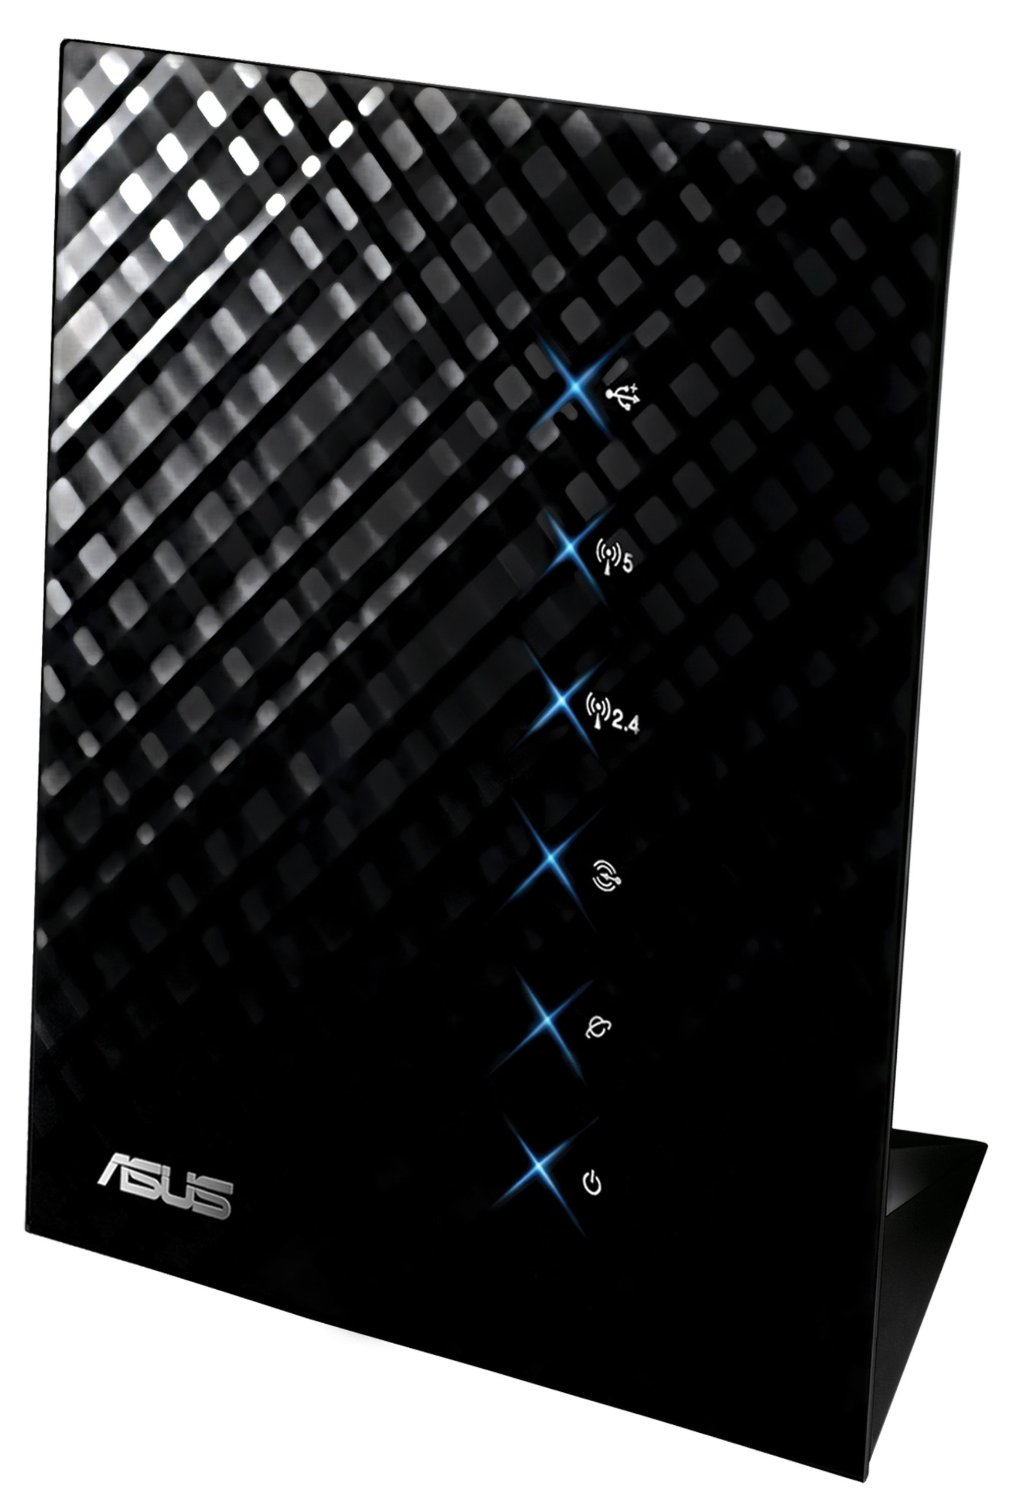 Asus RT N56U Black Diamond